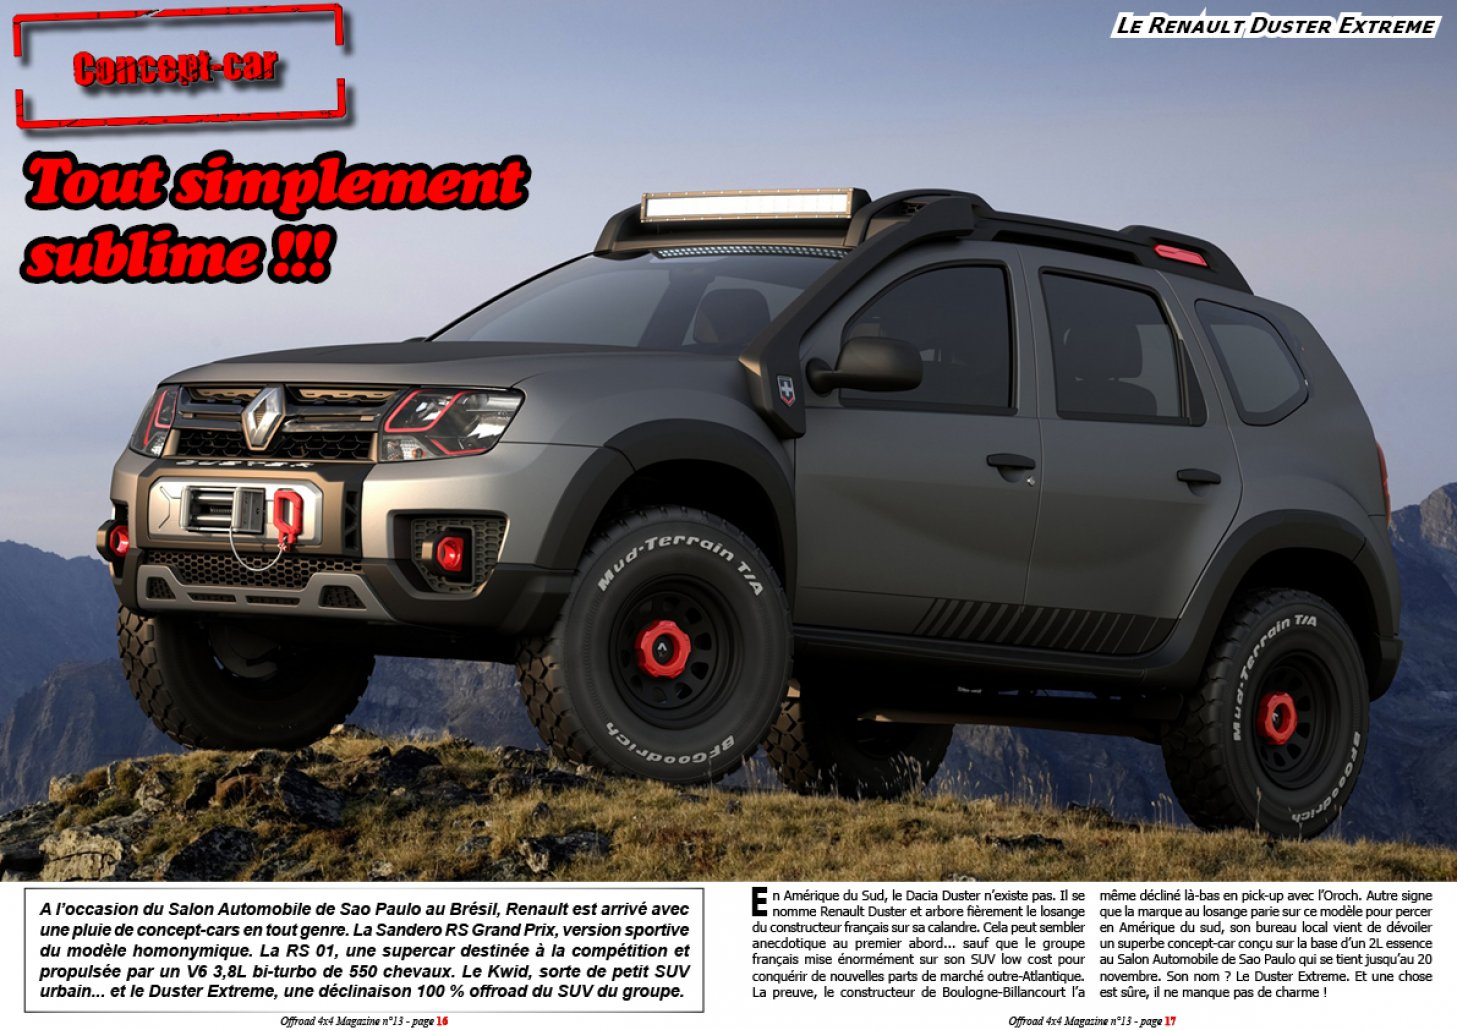 Le Renault Duster Extreme Concept